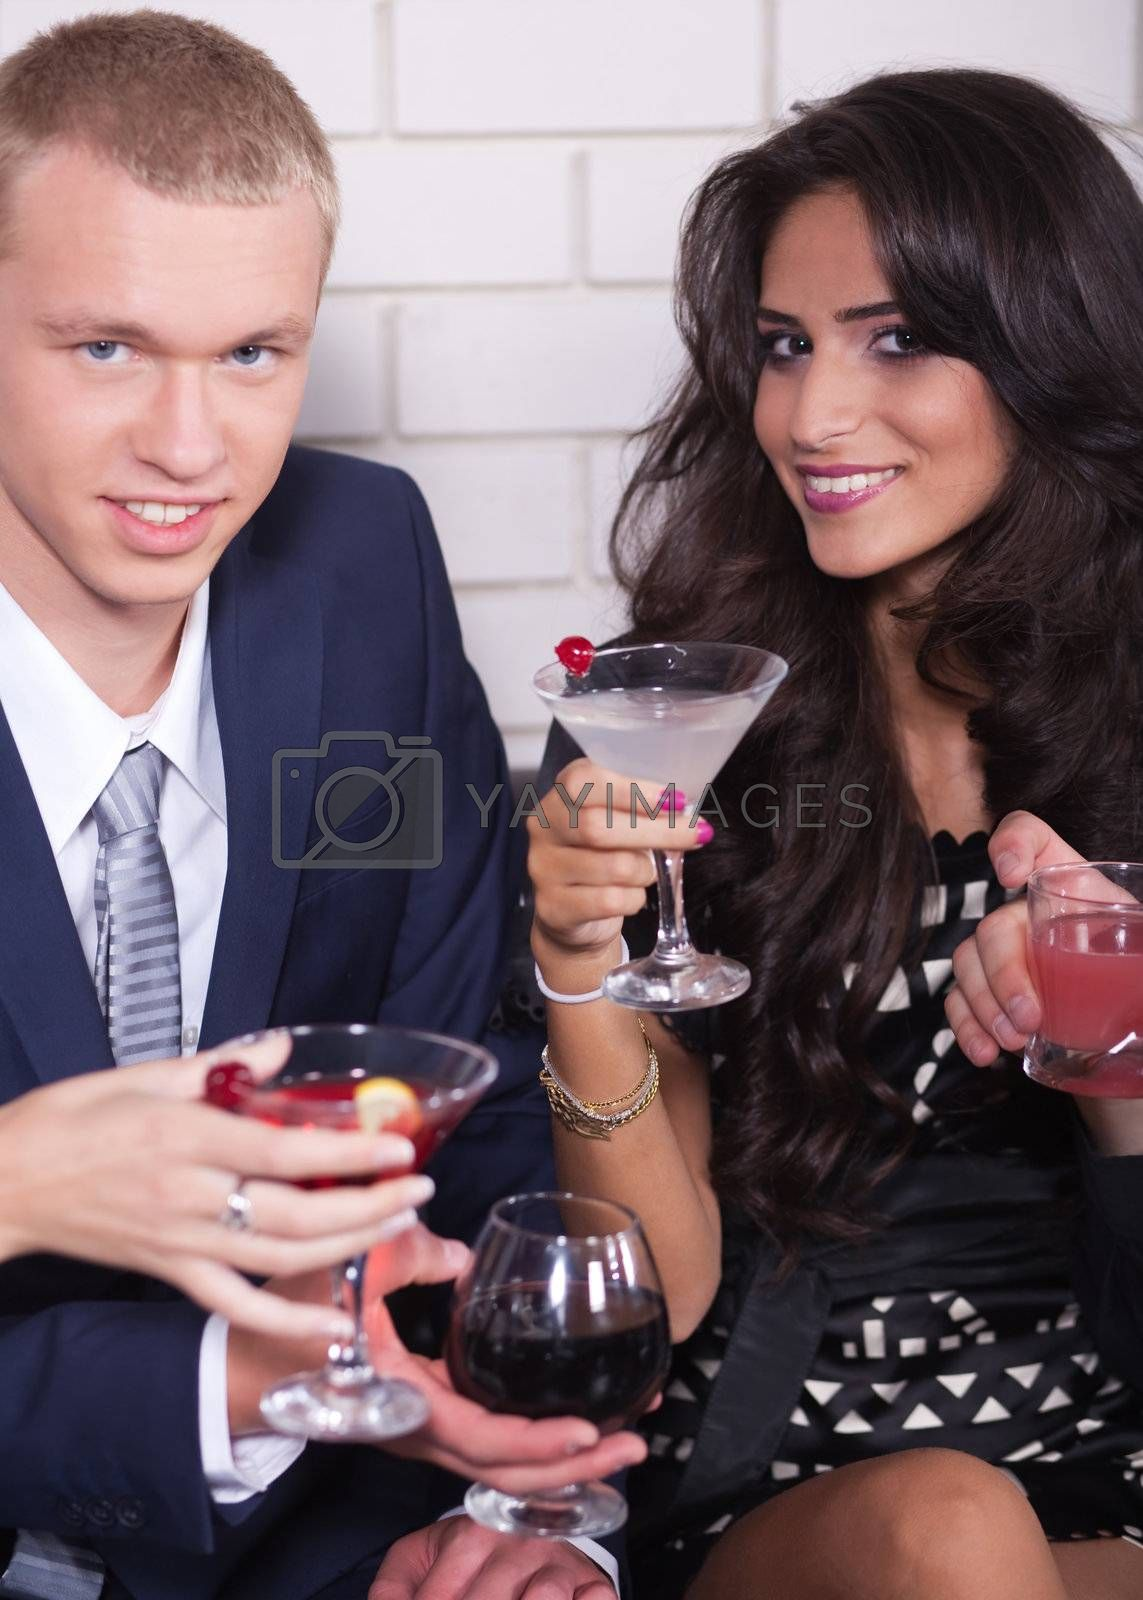 Couple on date in bar or night club enjoying wine, romantic eventing..